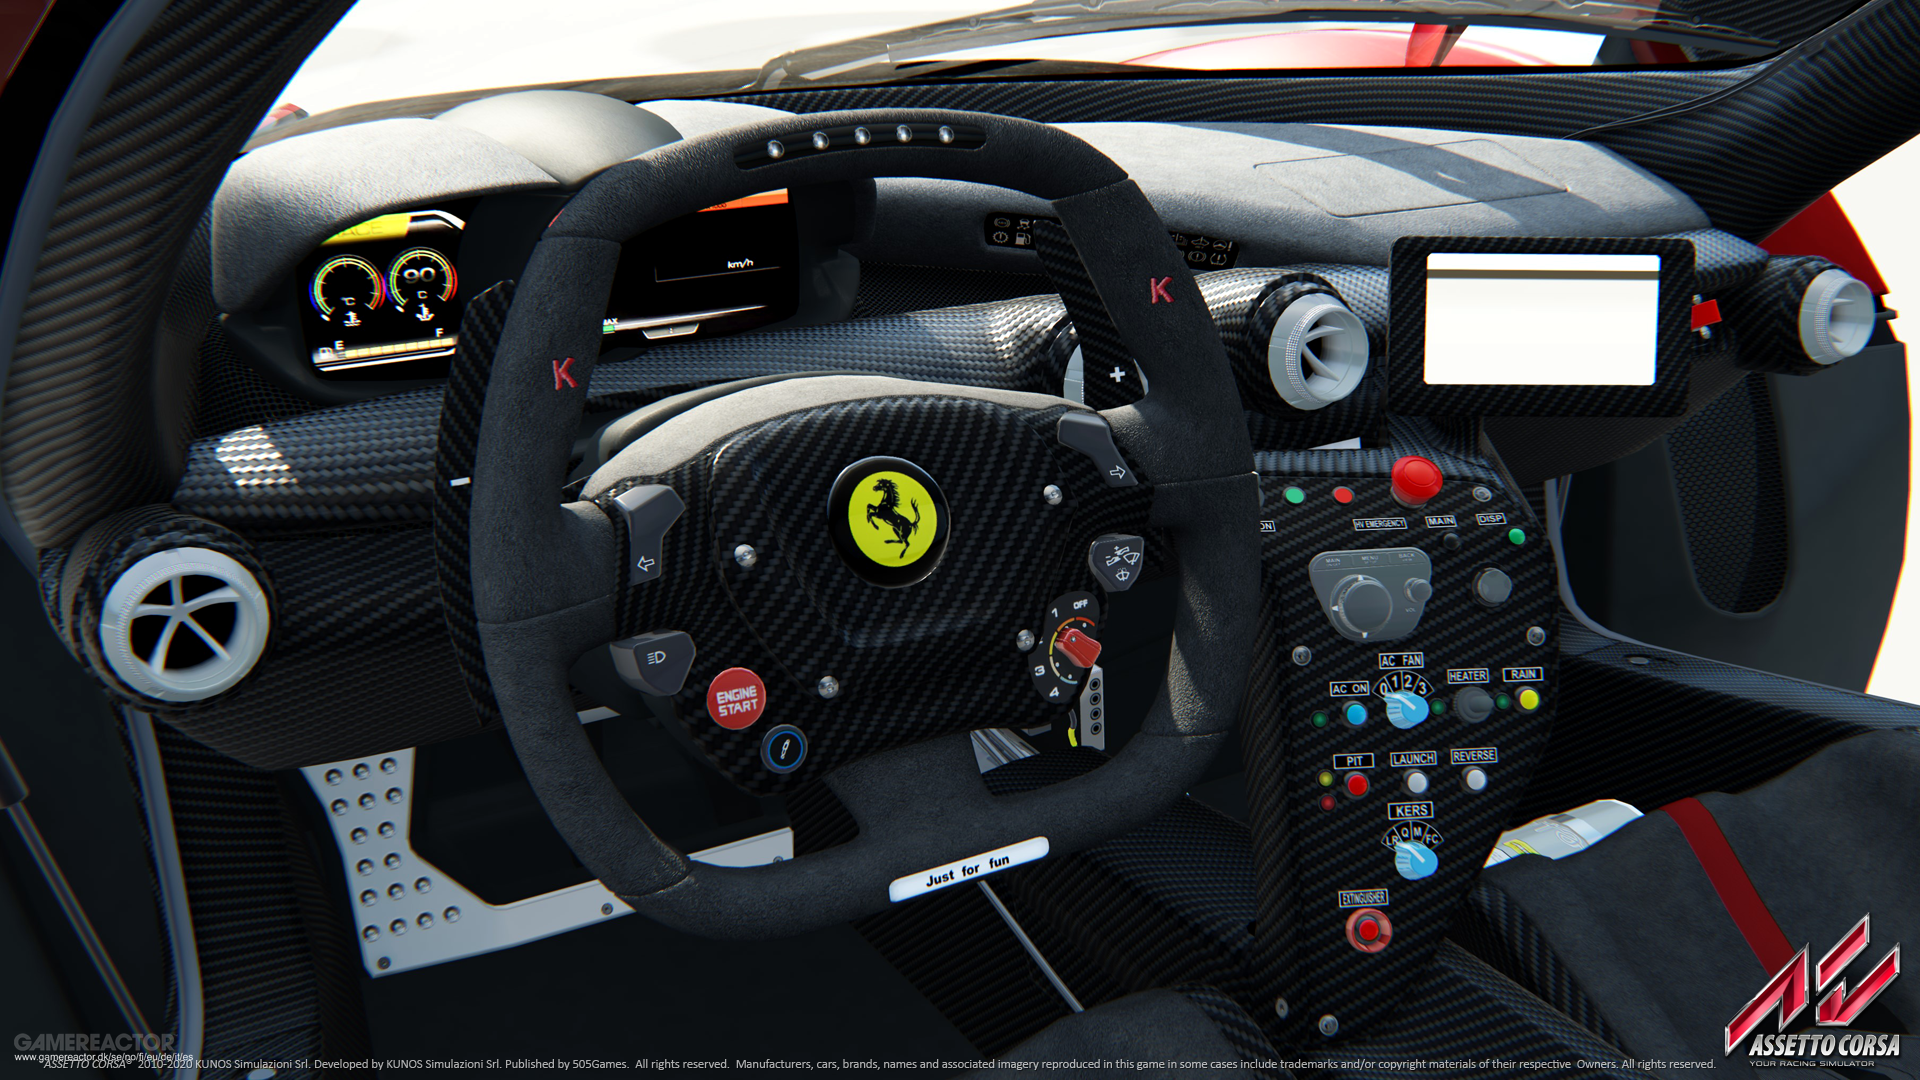 This is how Force Feedback works in Assetto Corsa on PS4